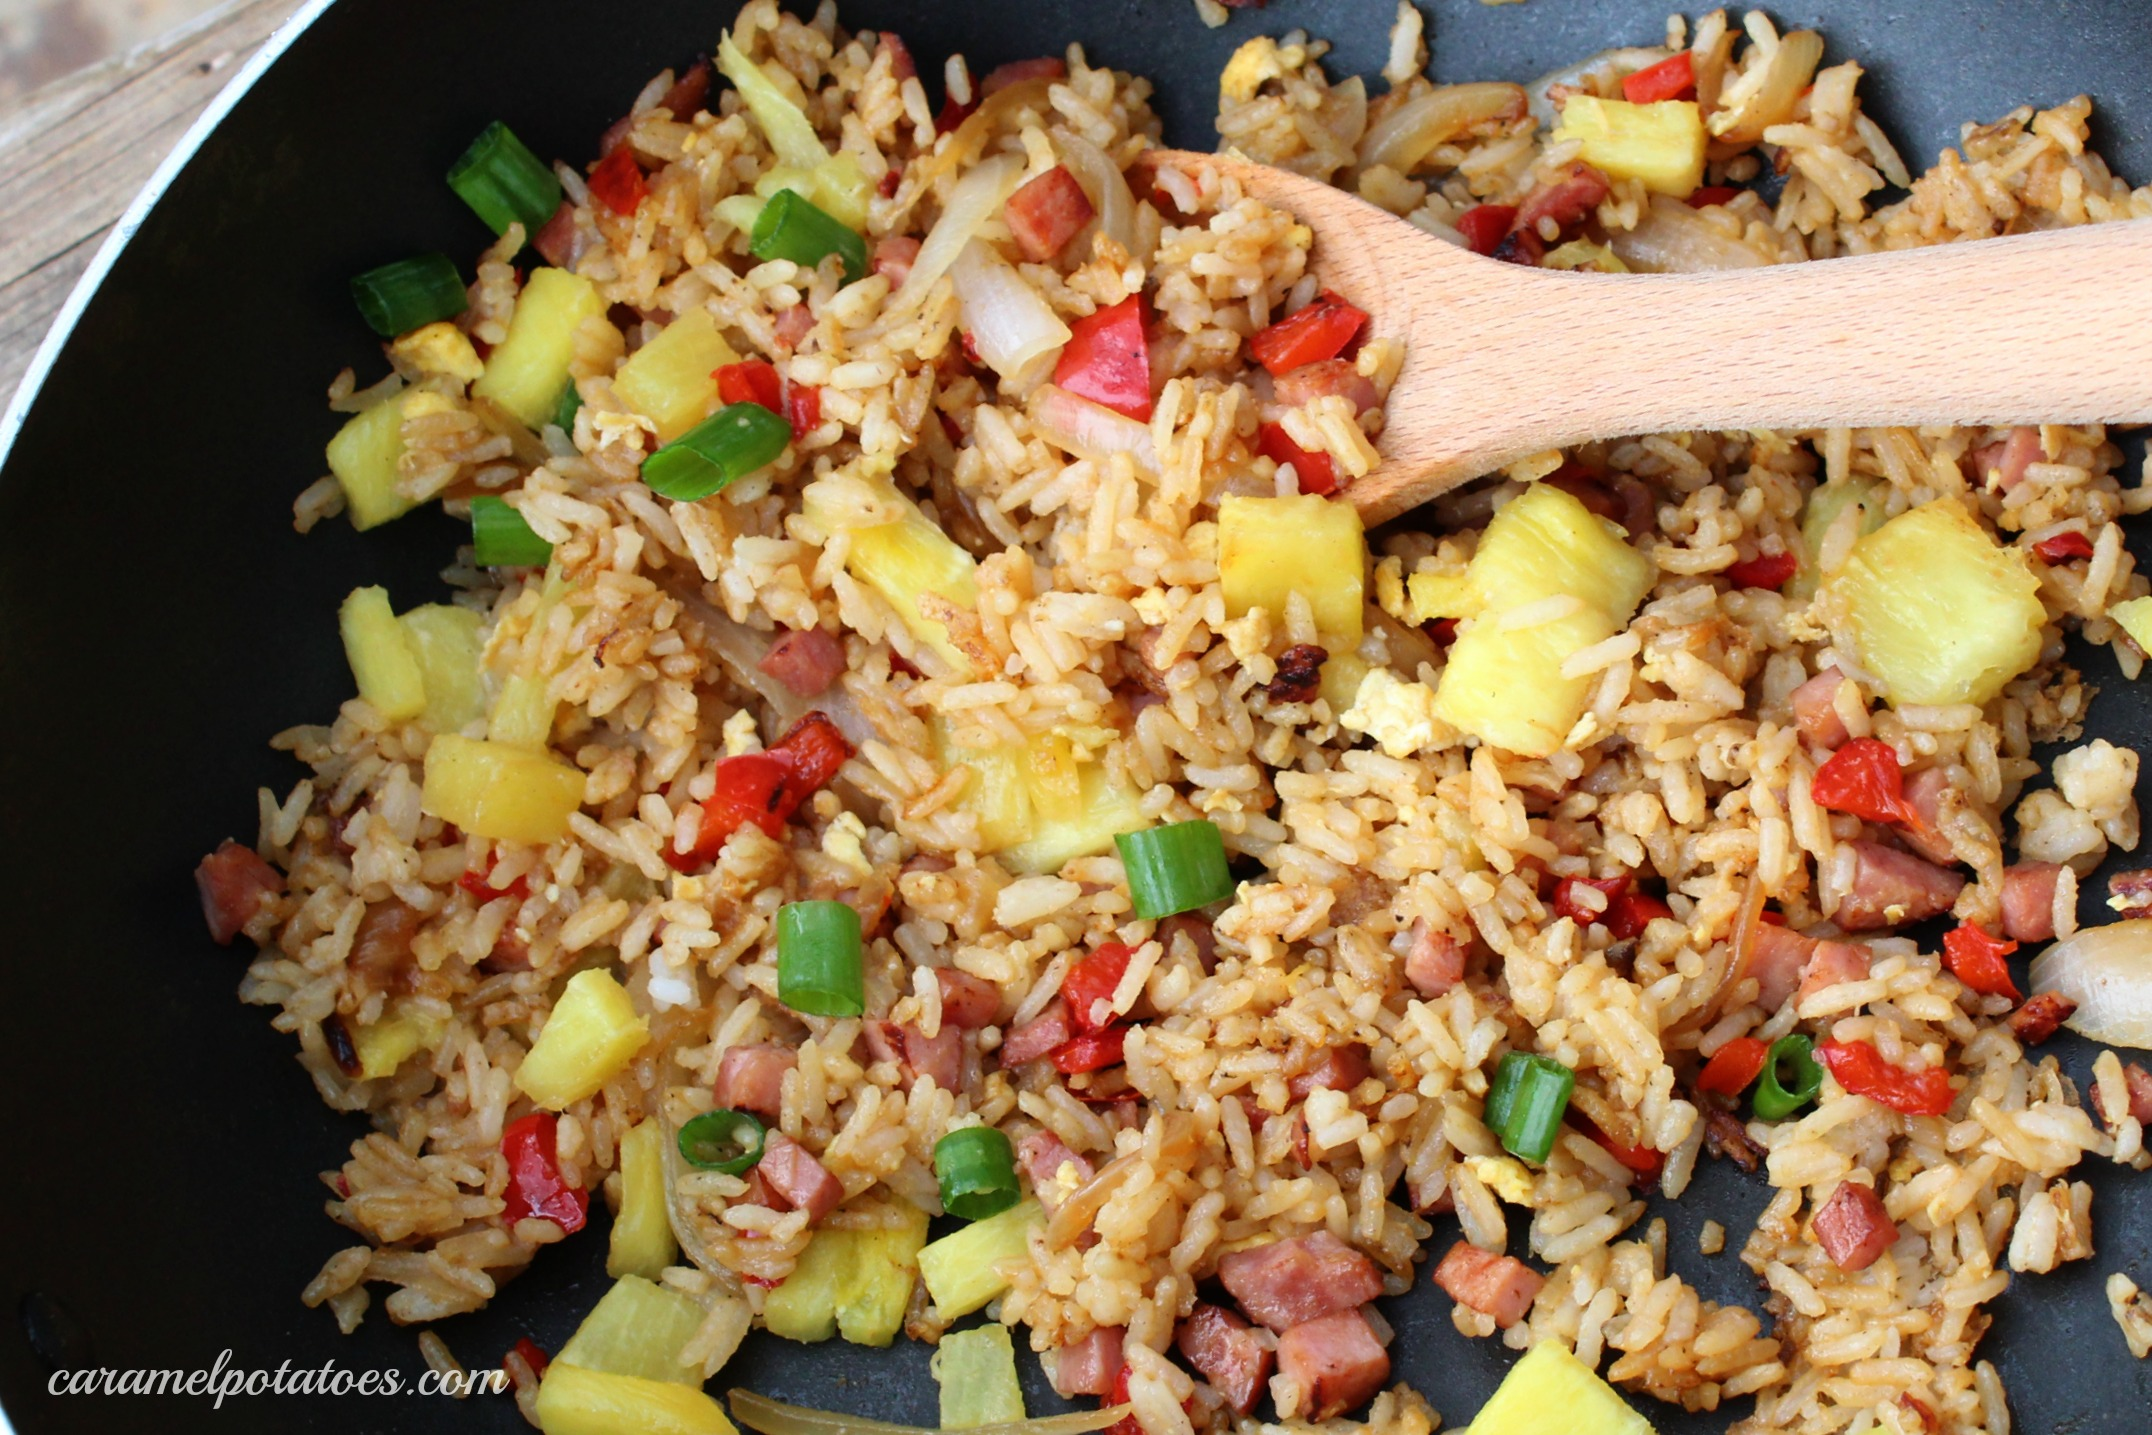 Caramel potatoes hawaiian fried rice this hawaiian fried rice combines the great sweet and salty combination of ham and pineapple with ginger garlic soy sauce and sriracha to make a wonderful ccuart Images